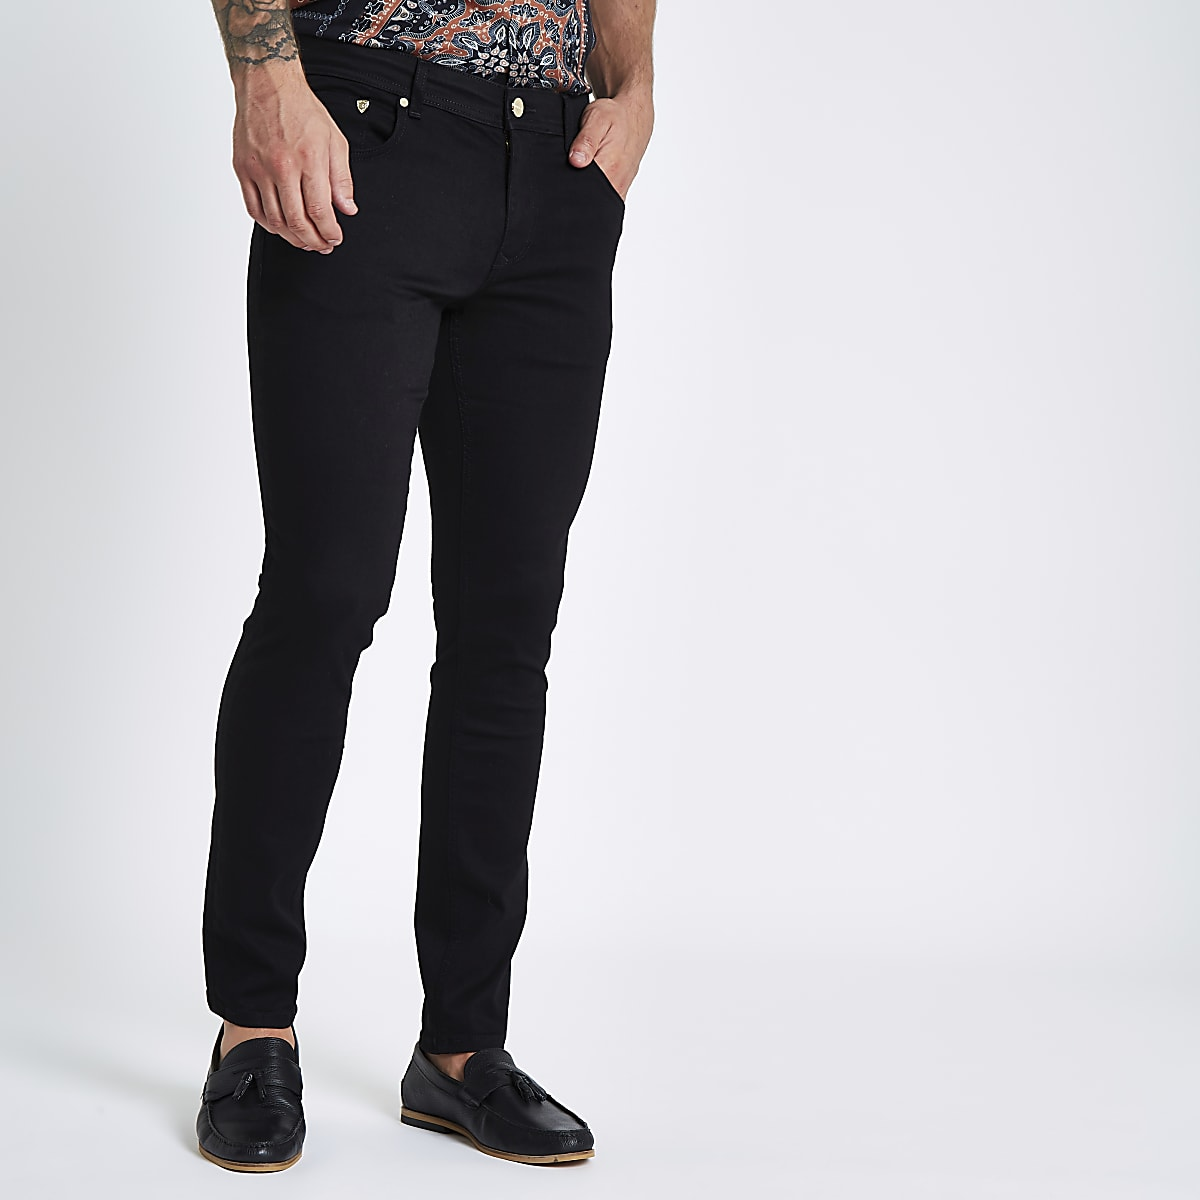 Black Sid skinny wasp embroidered jeans